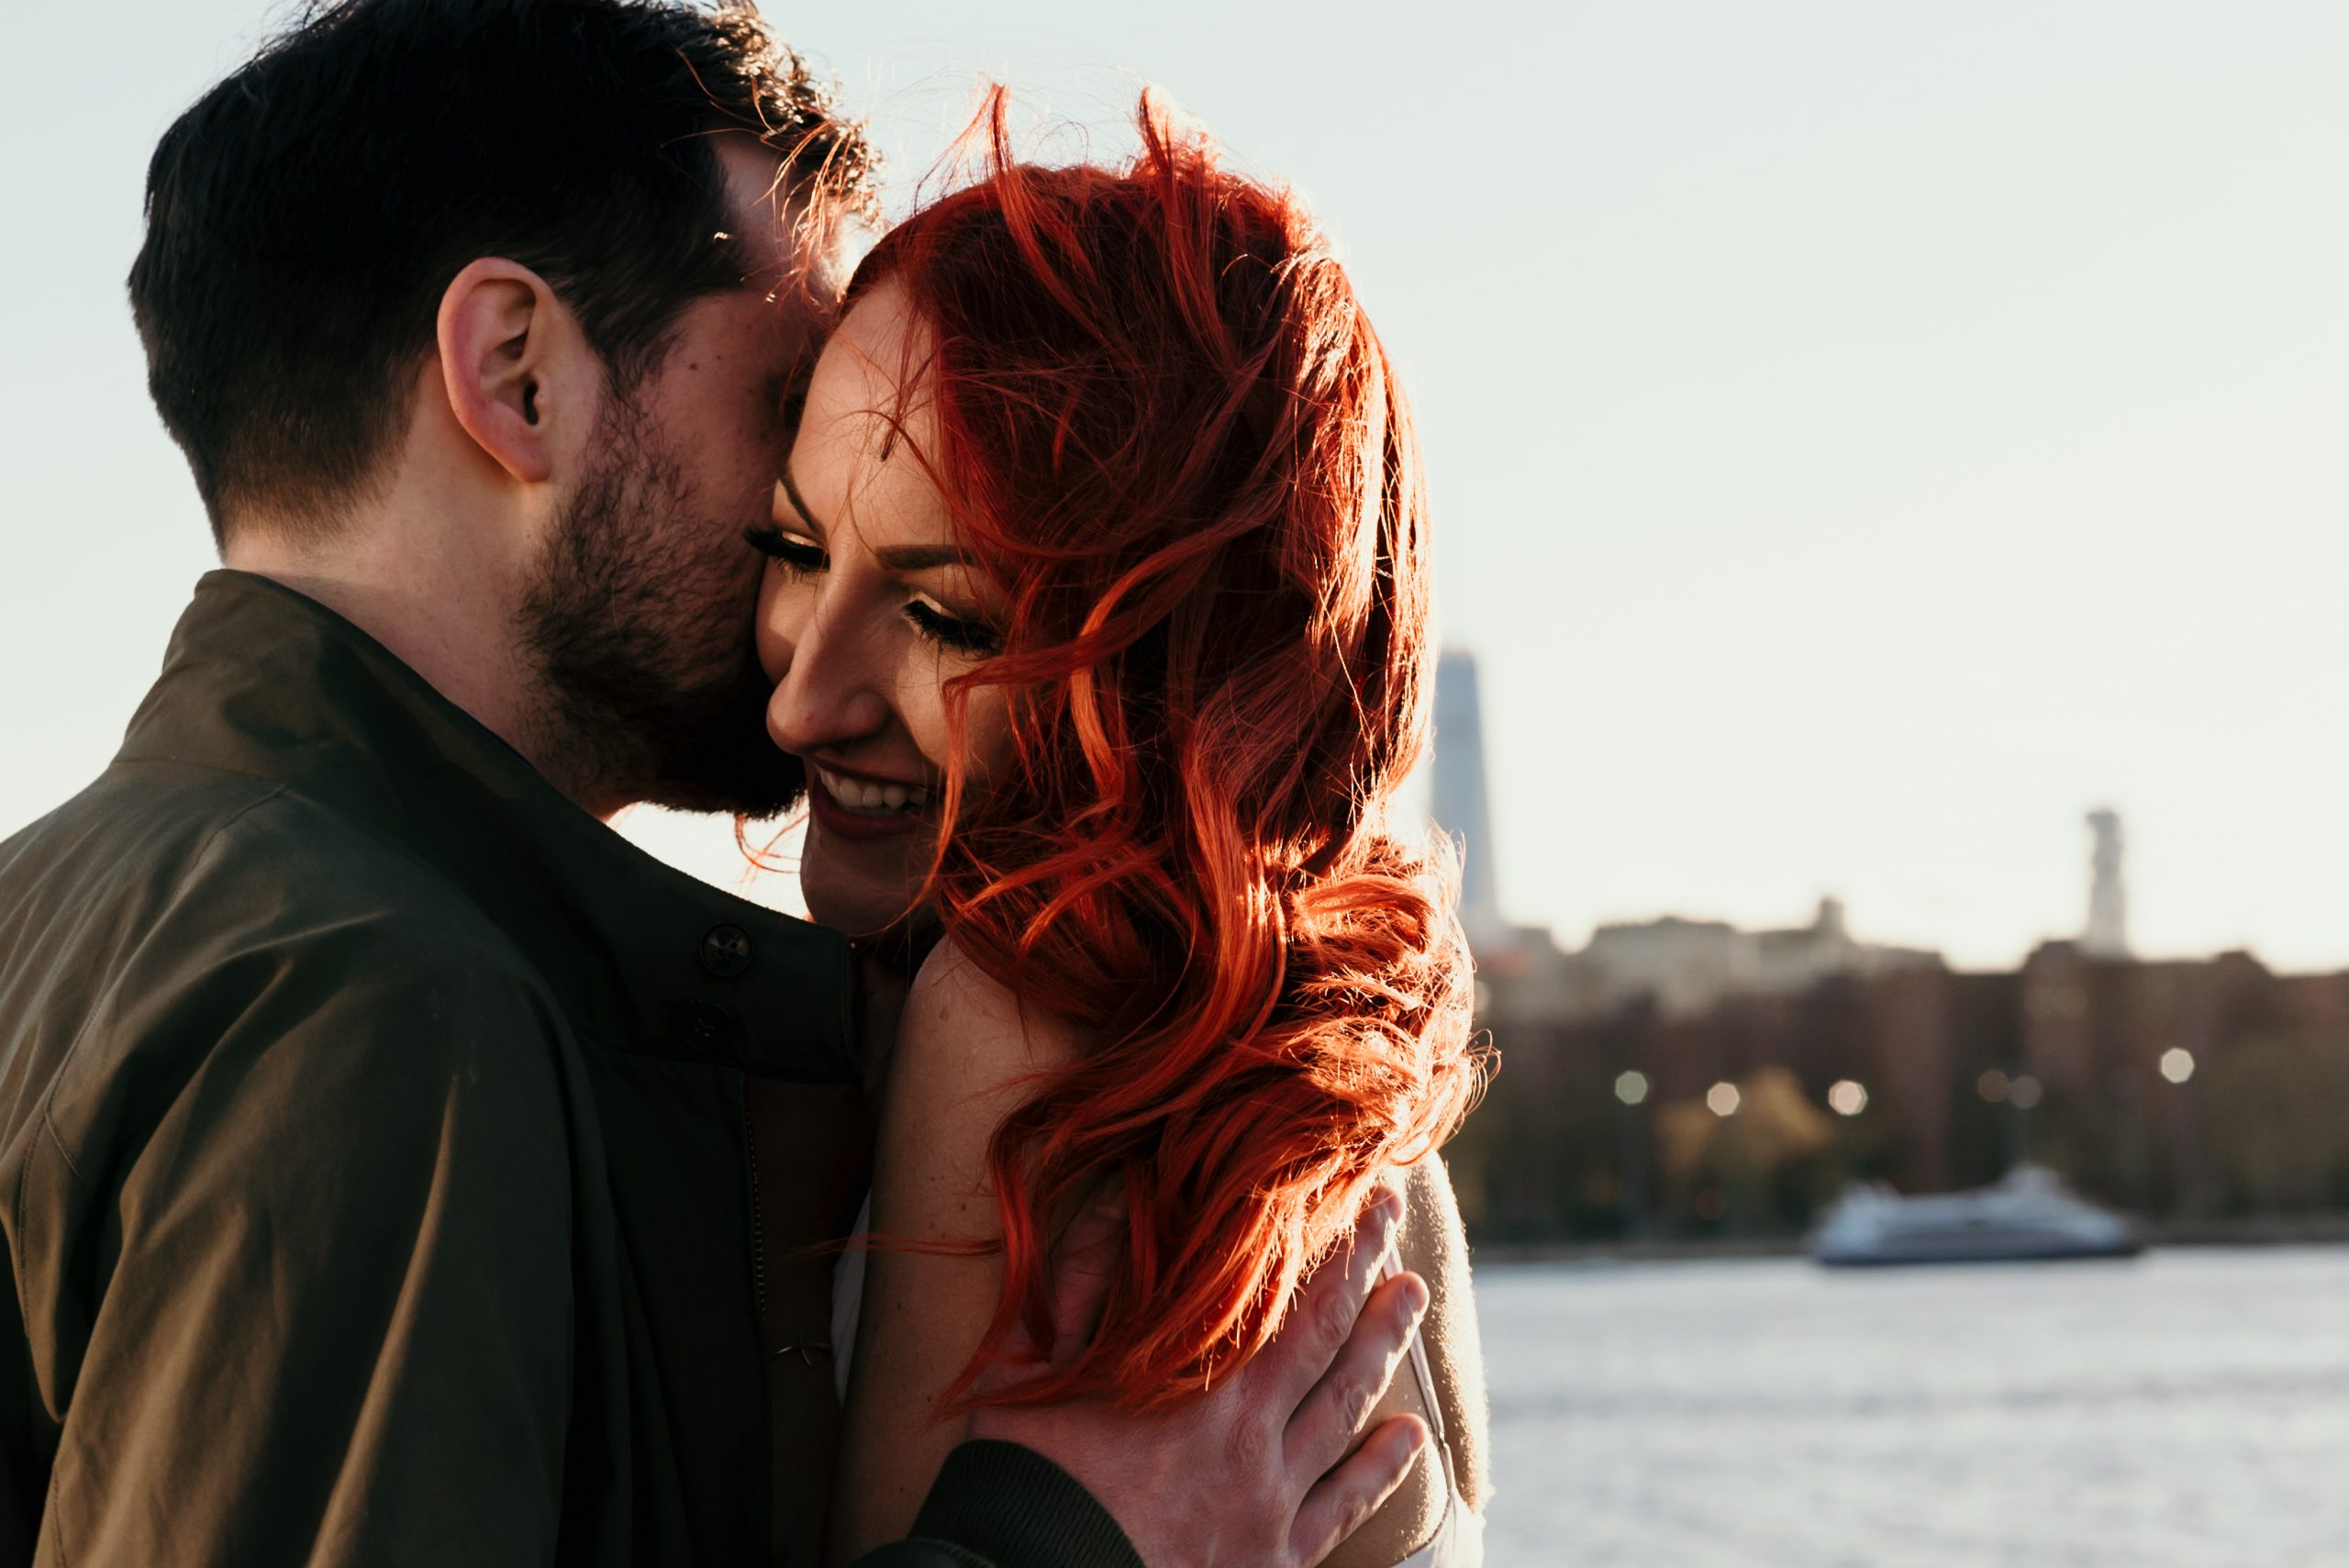 red-hair-engagement-photos-suessmoments